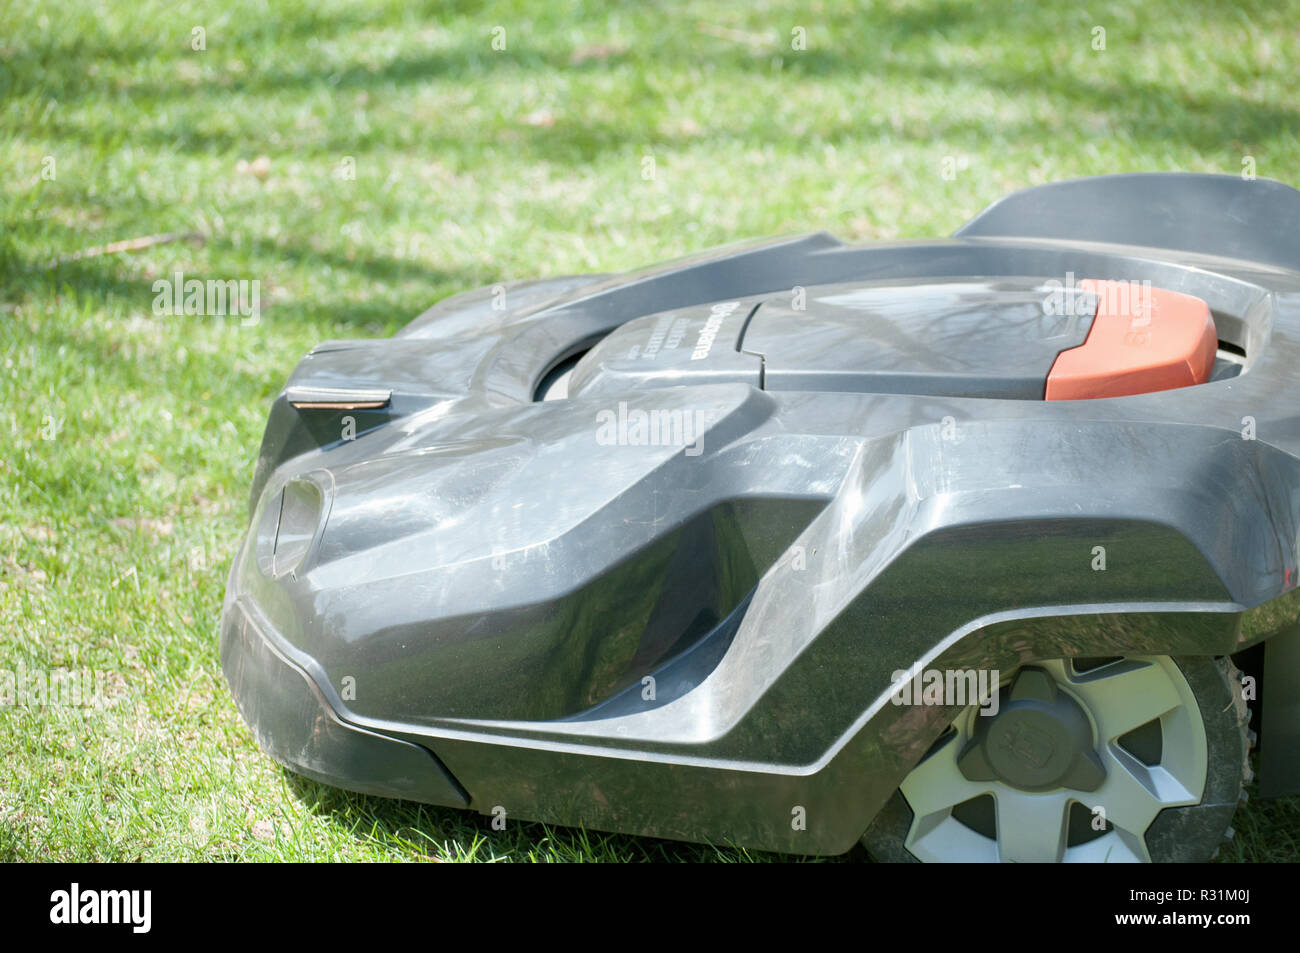 A husqvarna Automatic lawn mowing machine. - Stock Image